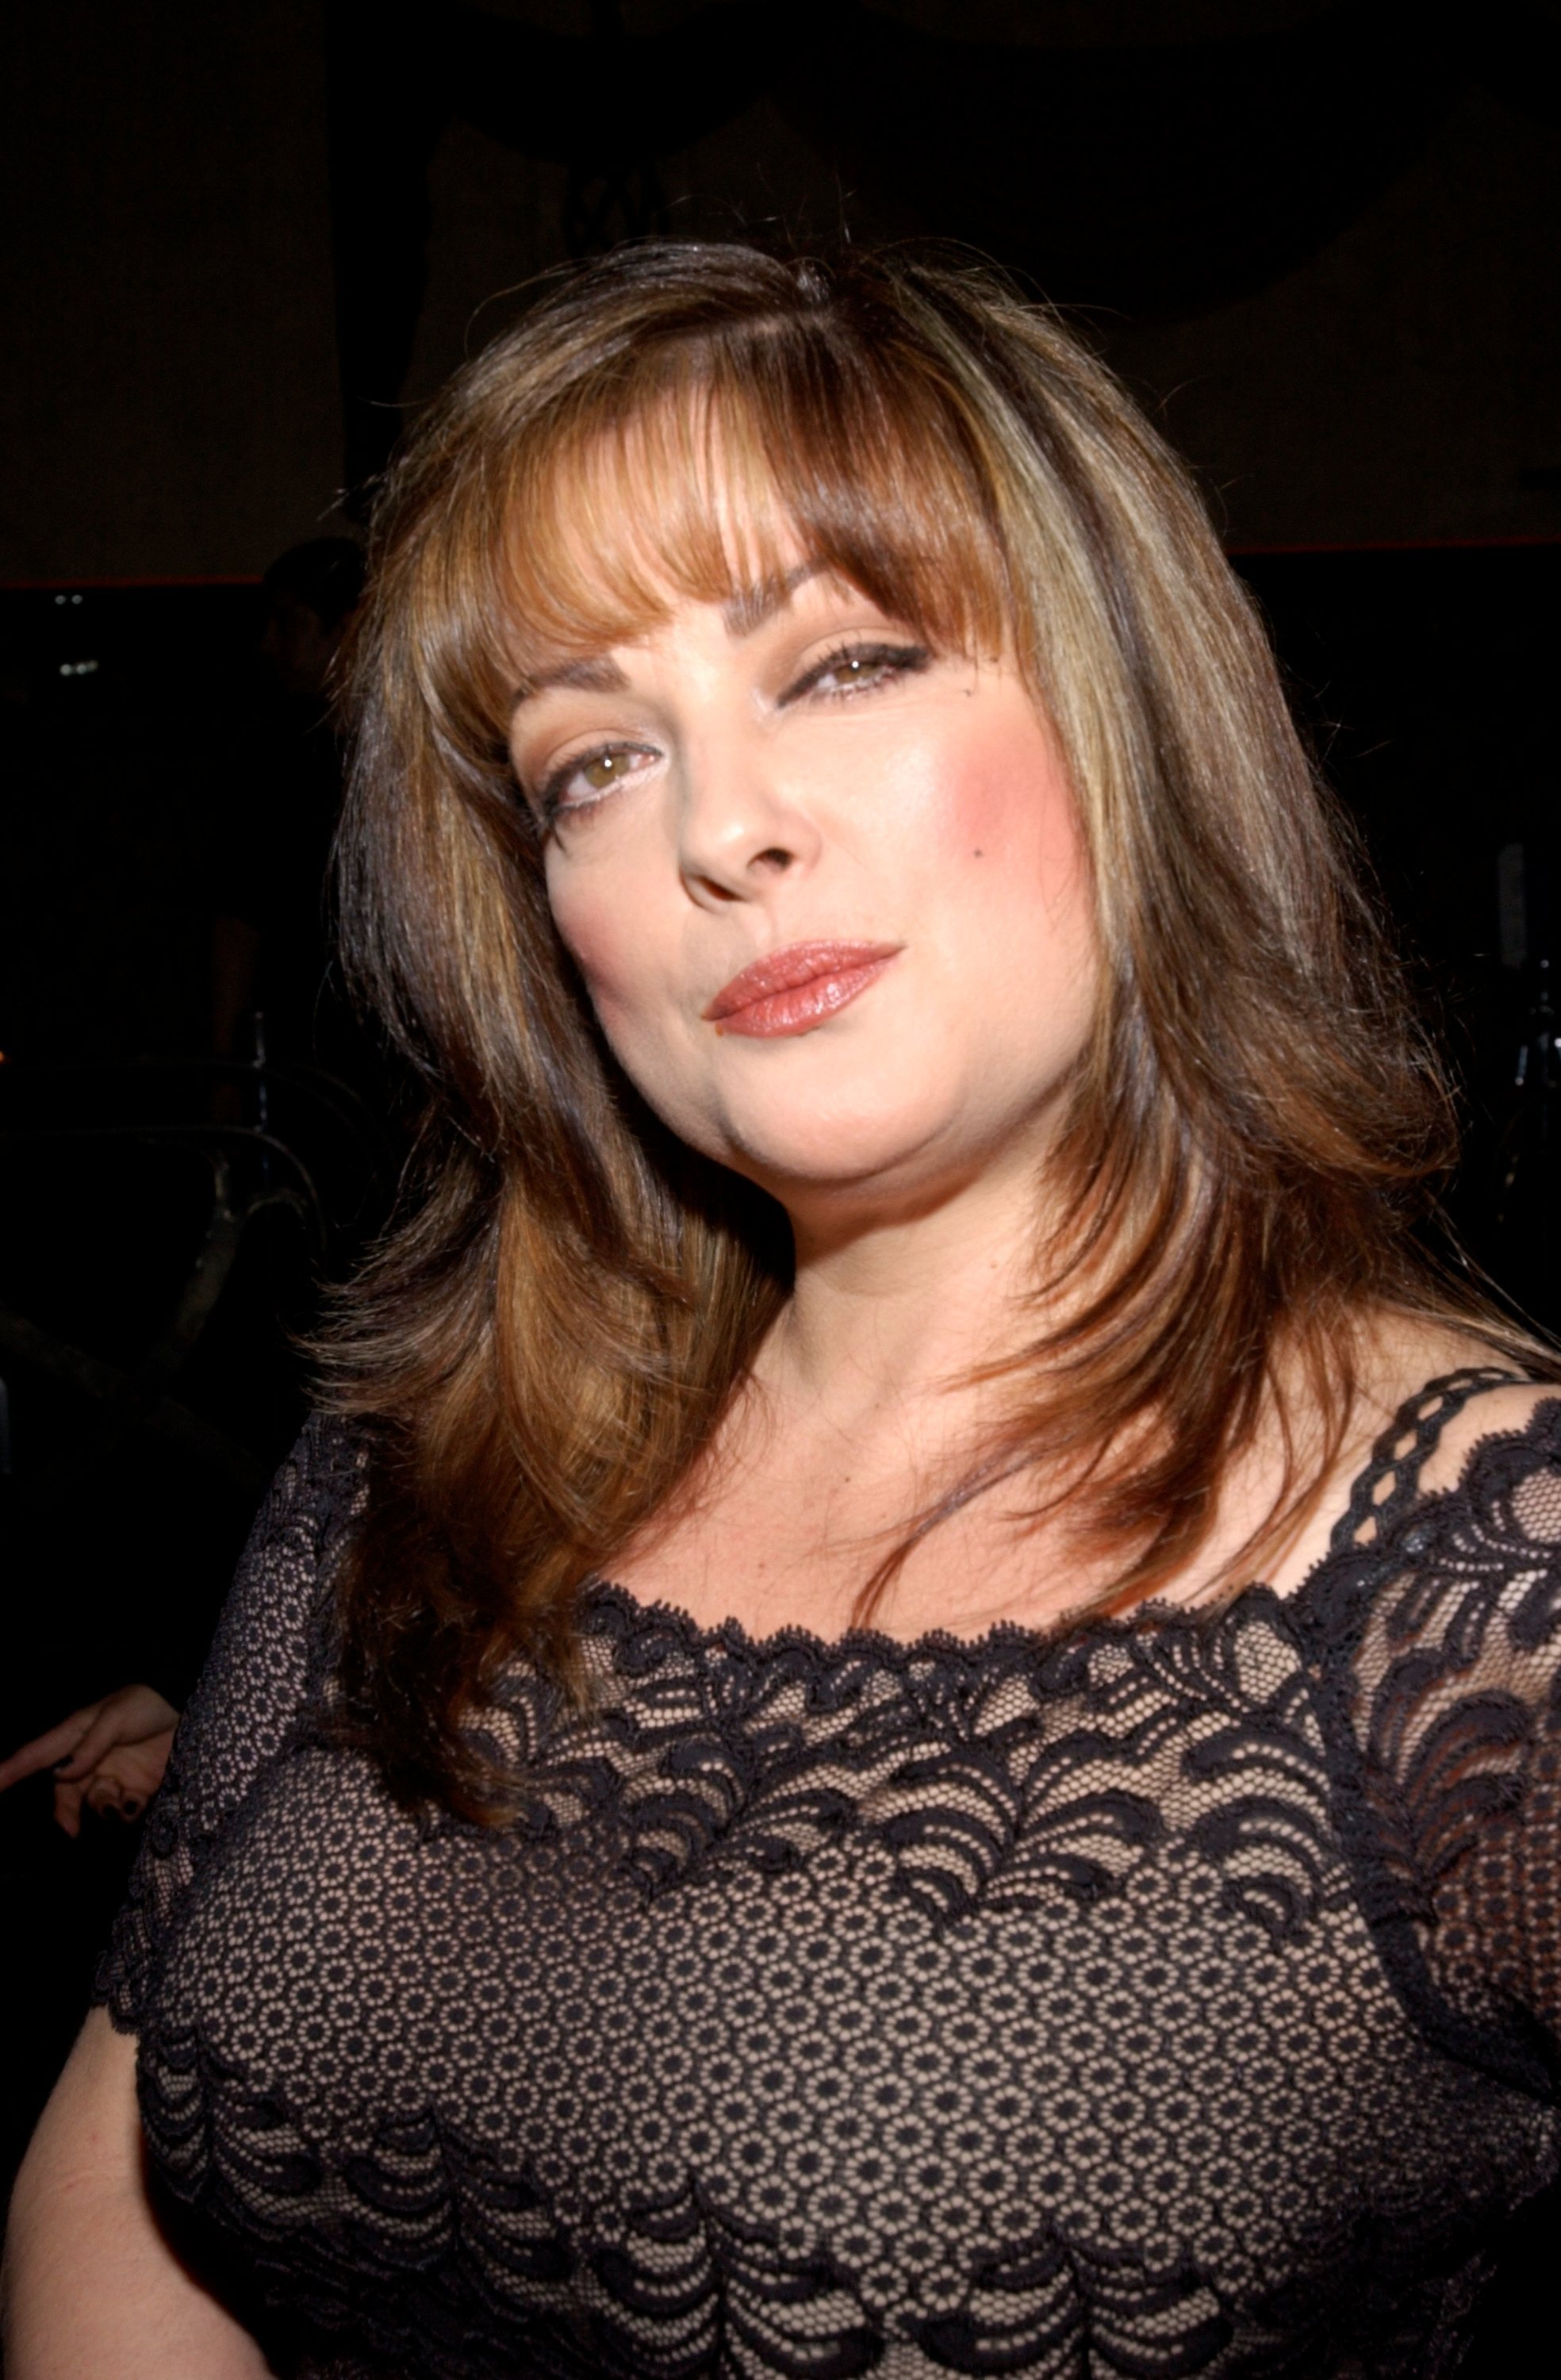 'Addams Family' Actress Lisa Loring Is Getting A Divorce ...